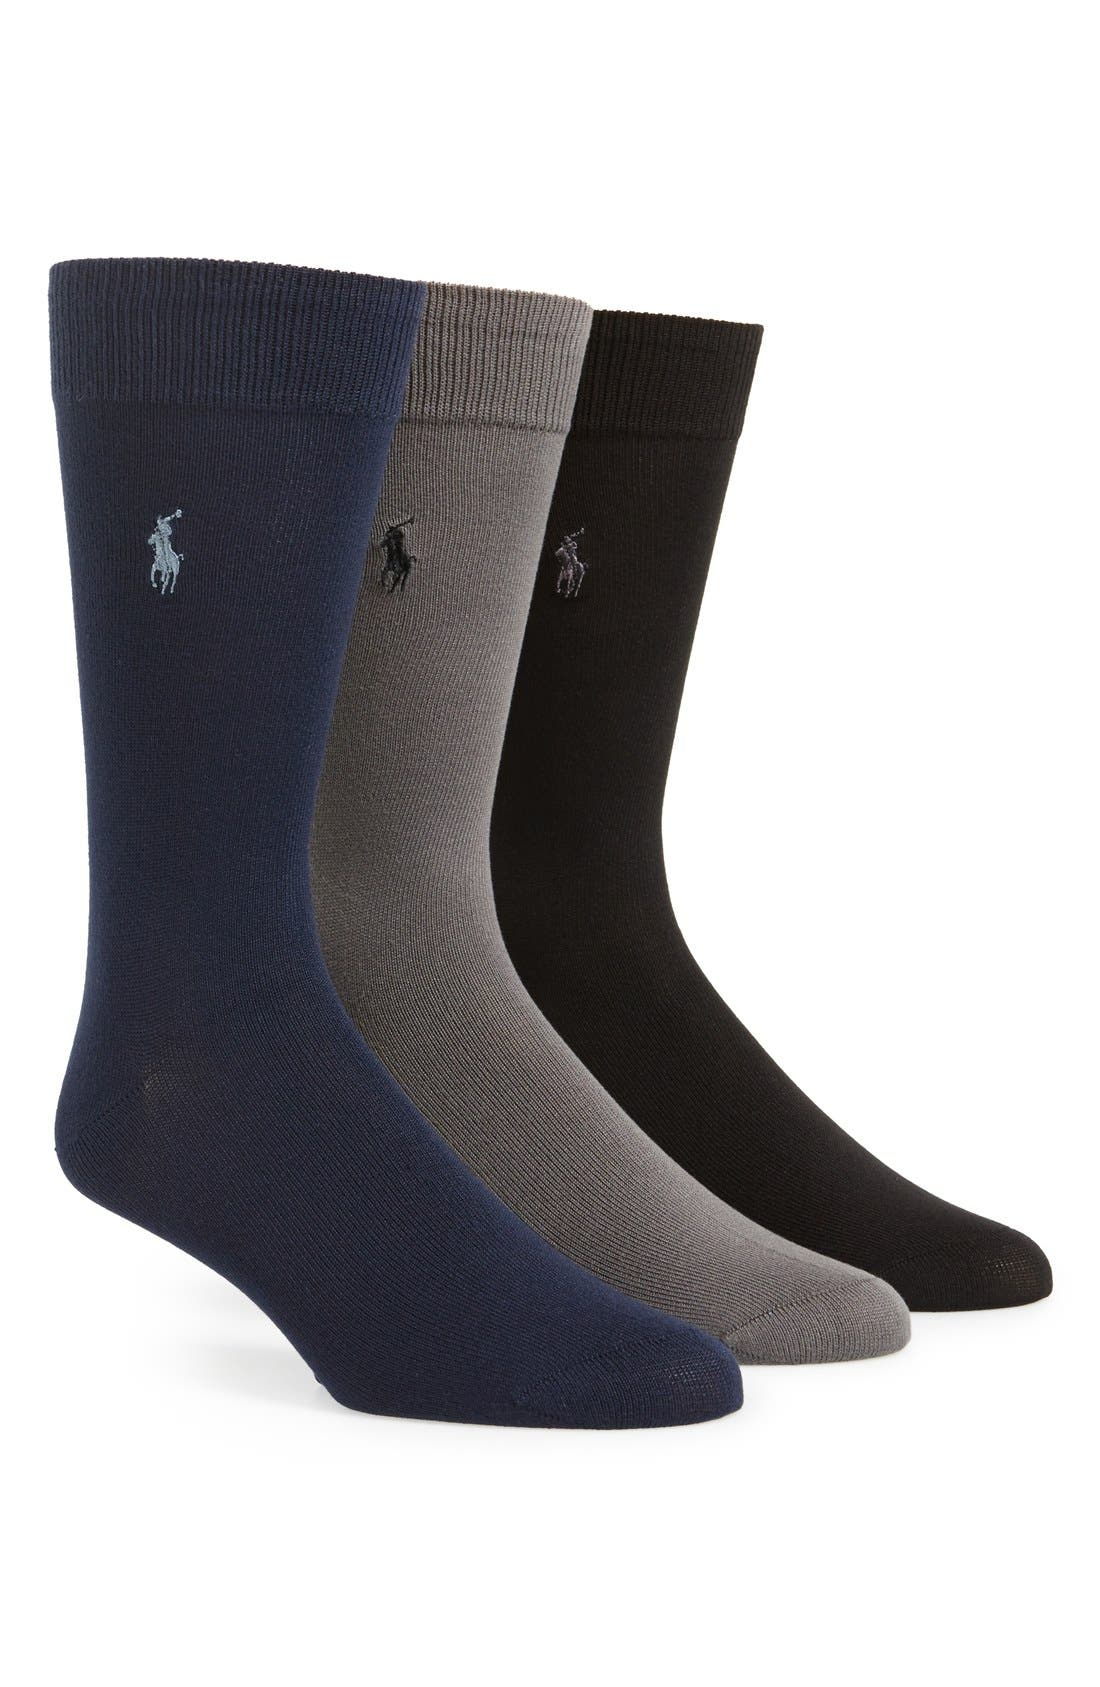 Main Image - Polo Ralph Lauren Assorted 3-Pack Supersoft Socks